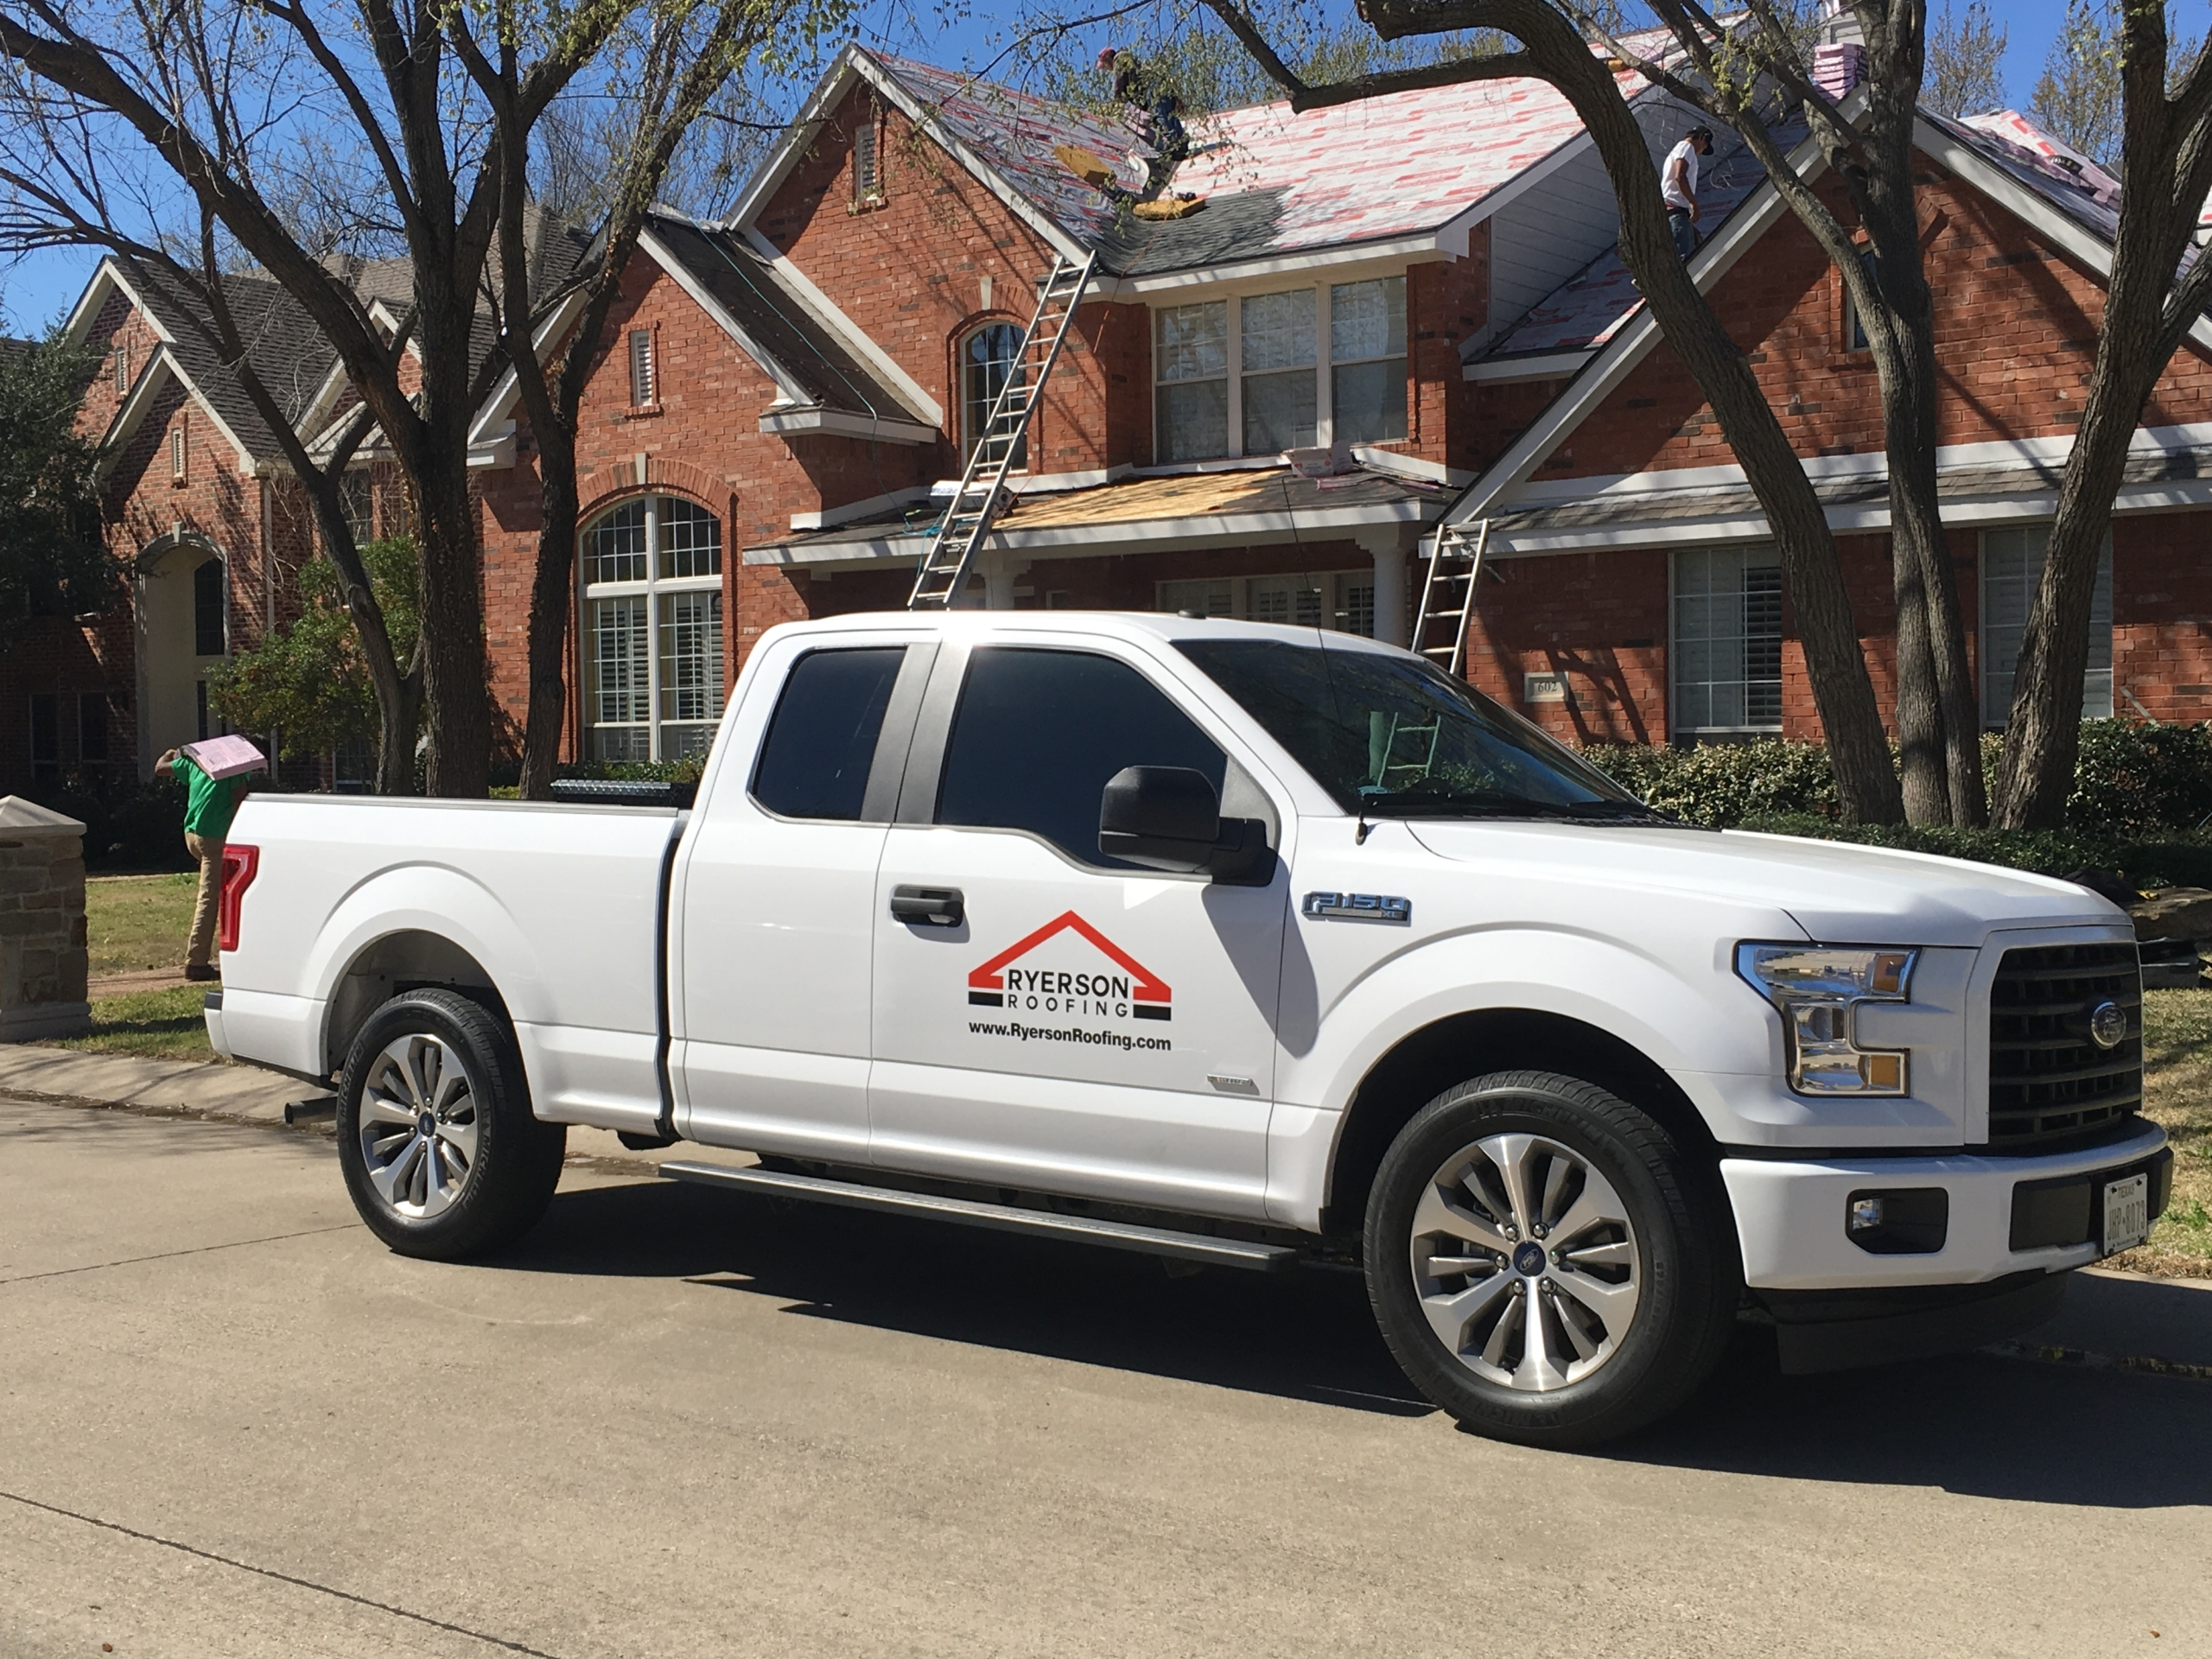 Ryerson Roofing Contractor